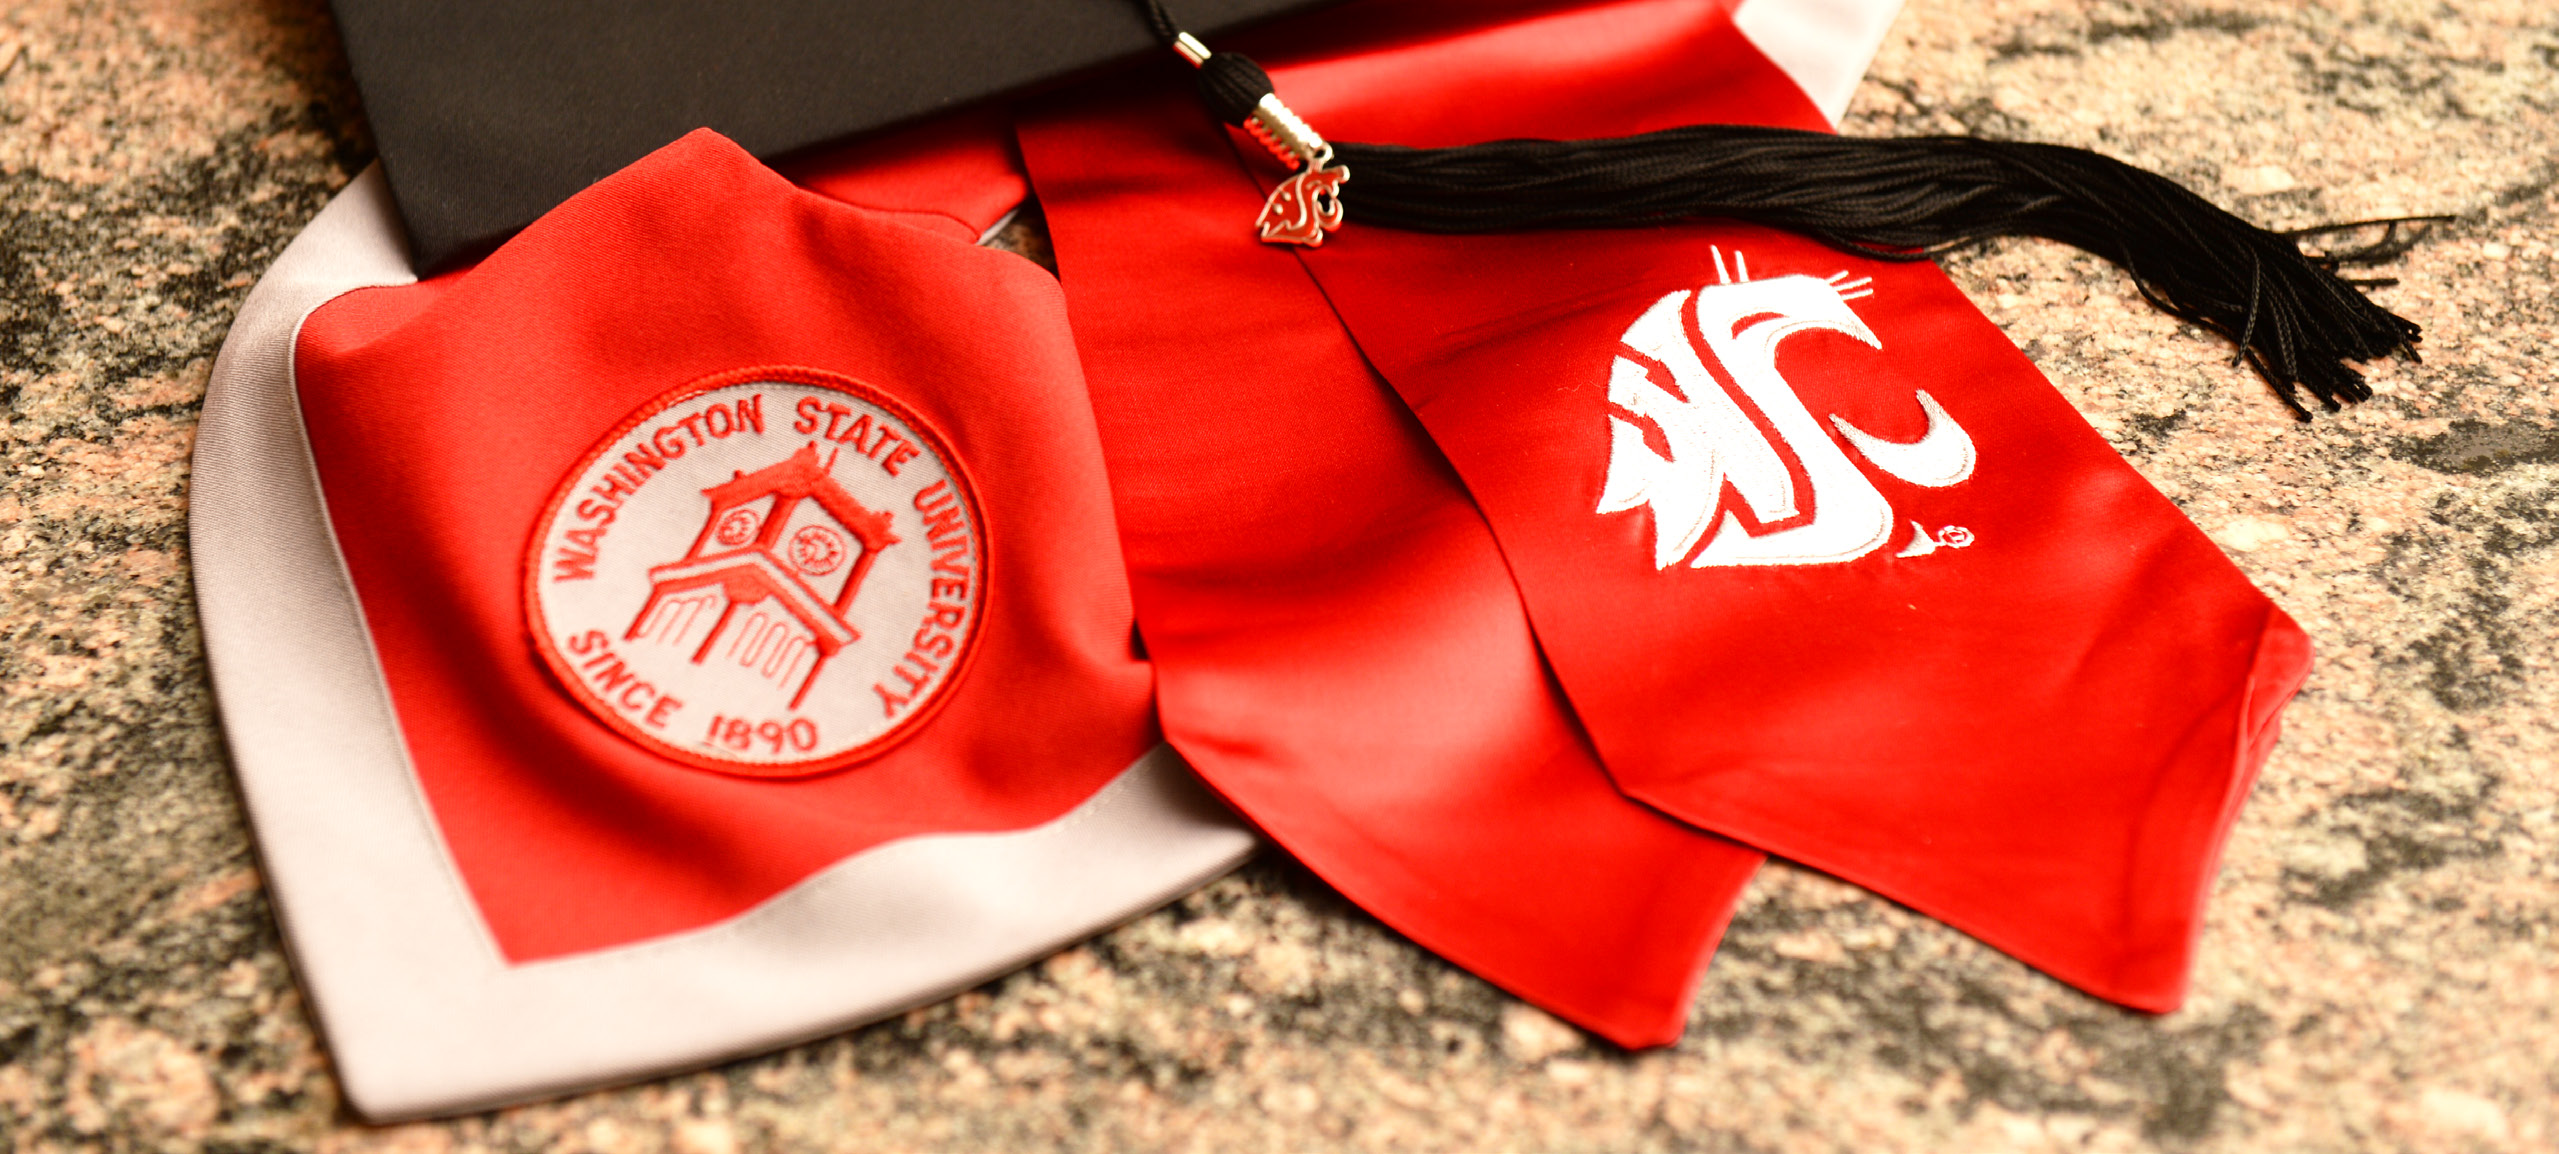 Rankings & Accreditation The Washington State University online MBA is an engaging and collaborative advanced business degree designed to prepare working professionals like you with the strategic